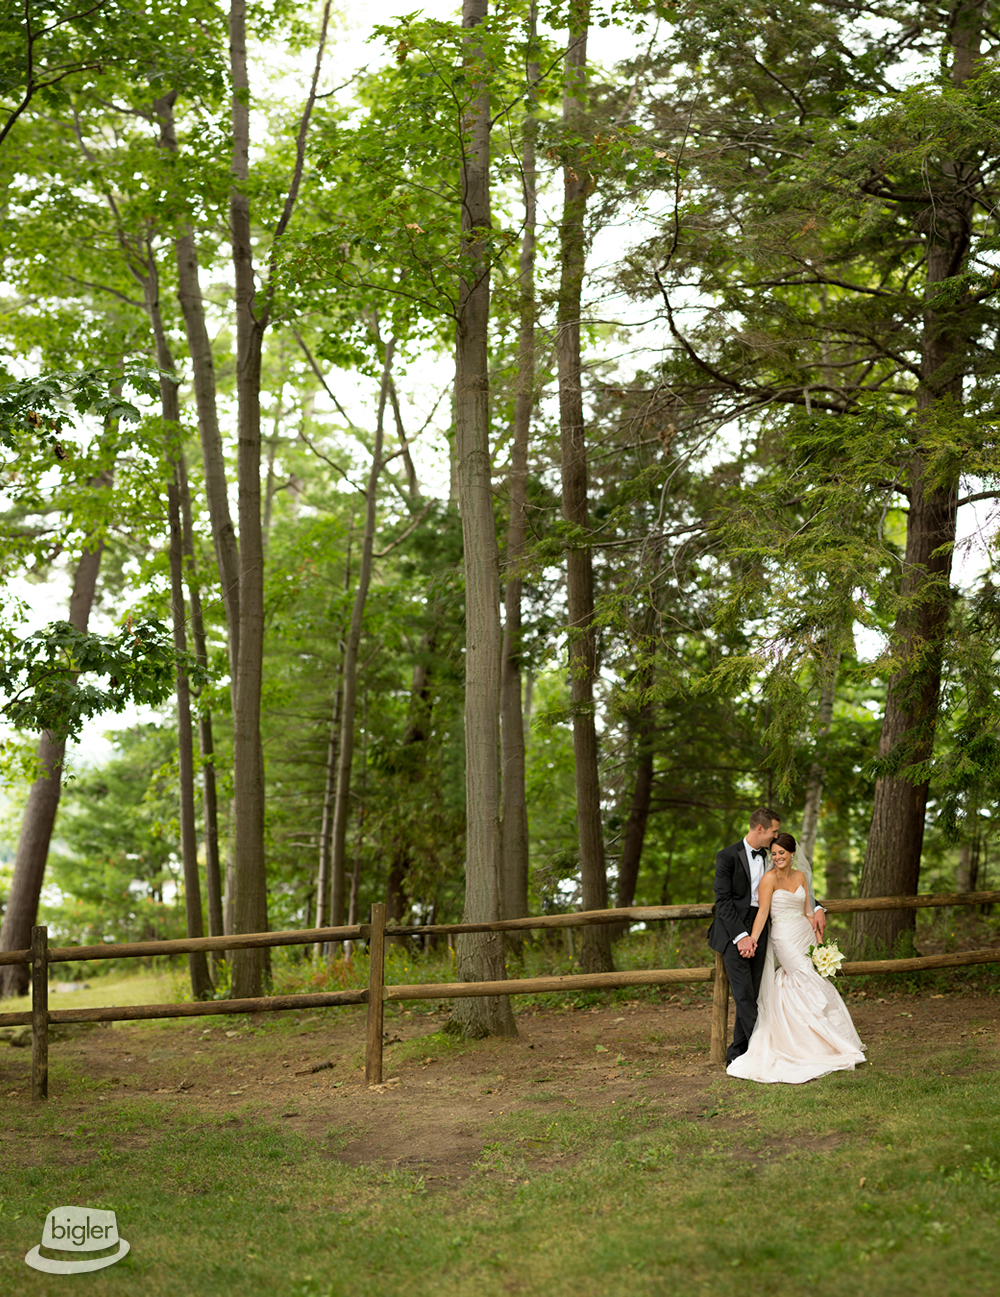 20150912_-_27b_-_Lake_George_Wedding